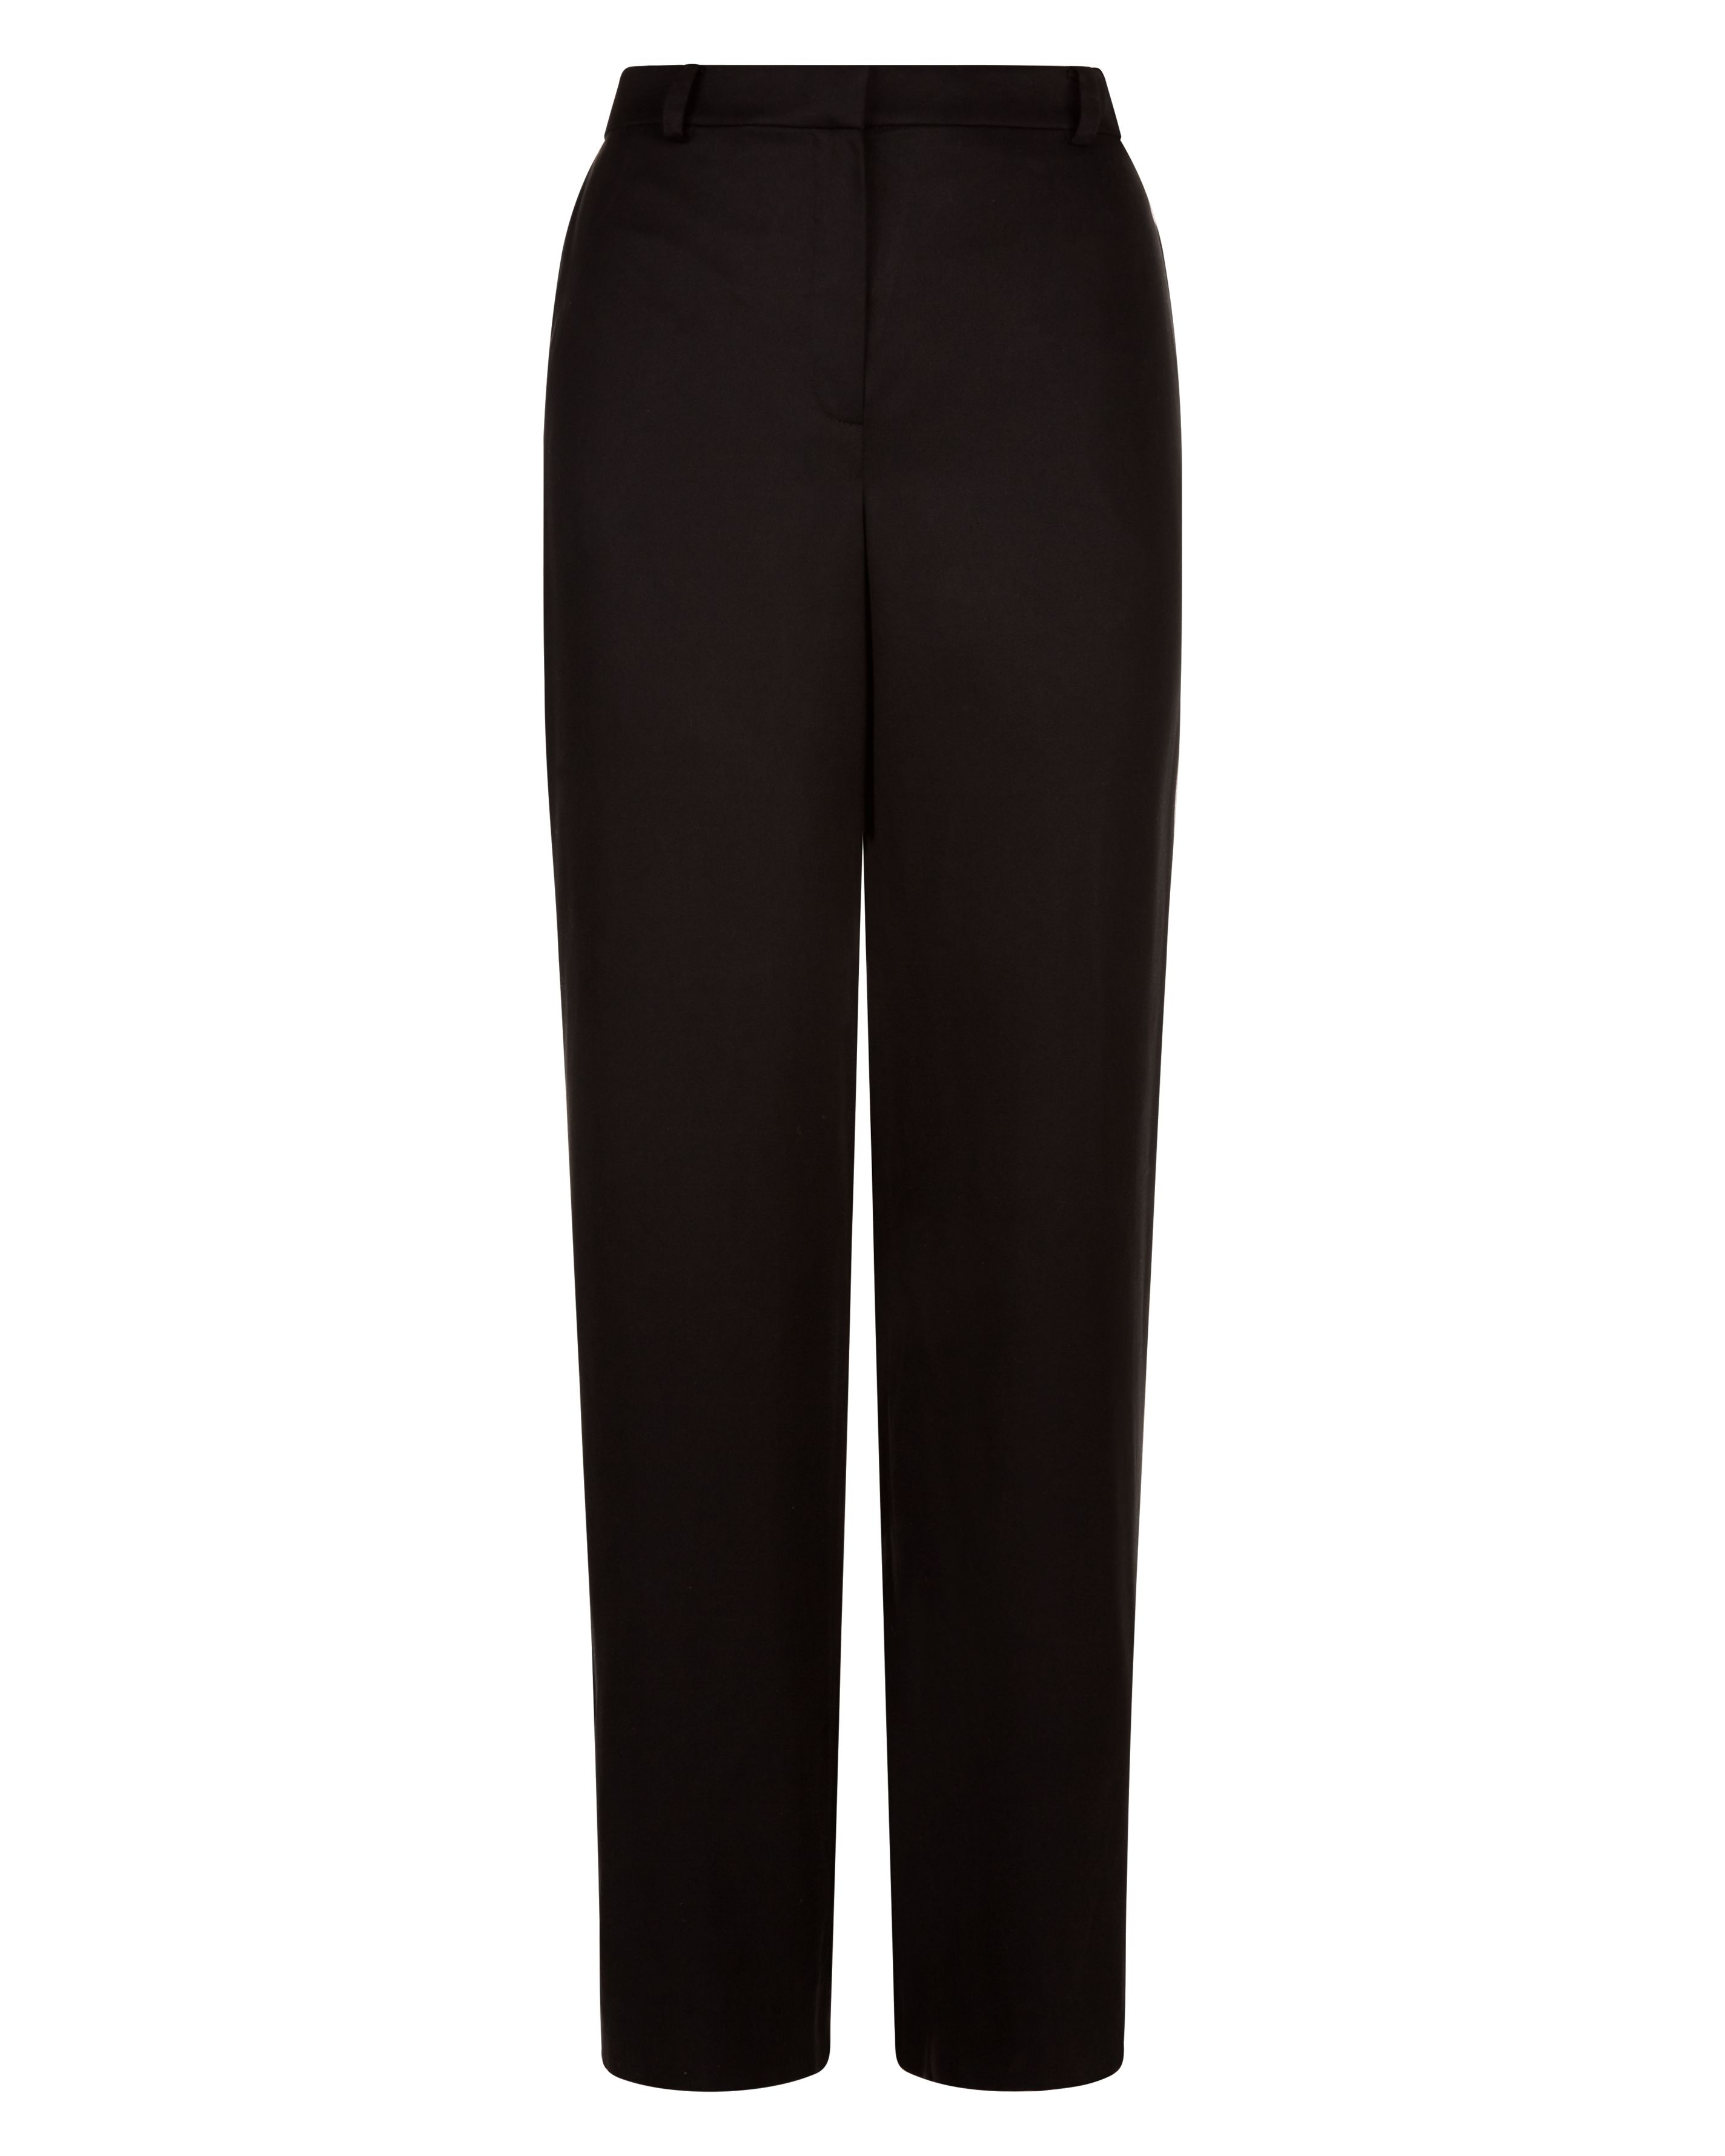 Jaeger Slouchy Stitich Detail Trousers, Black